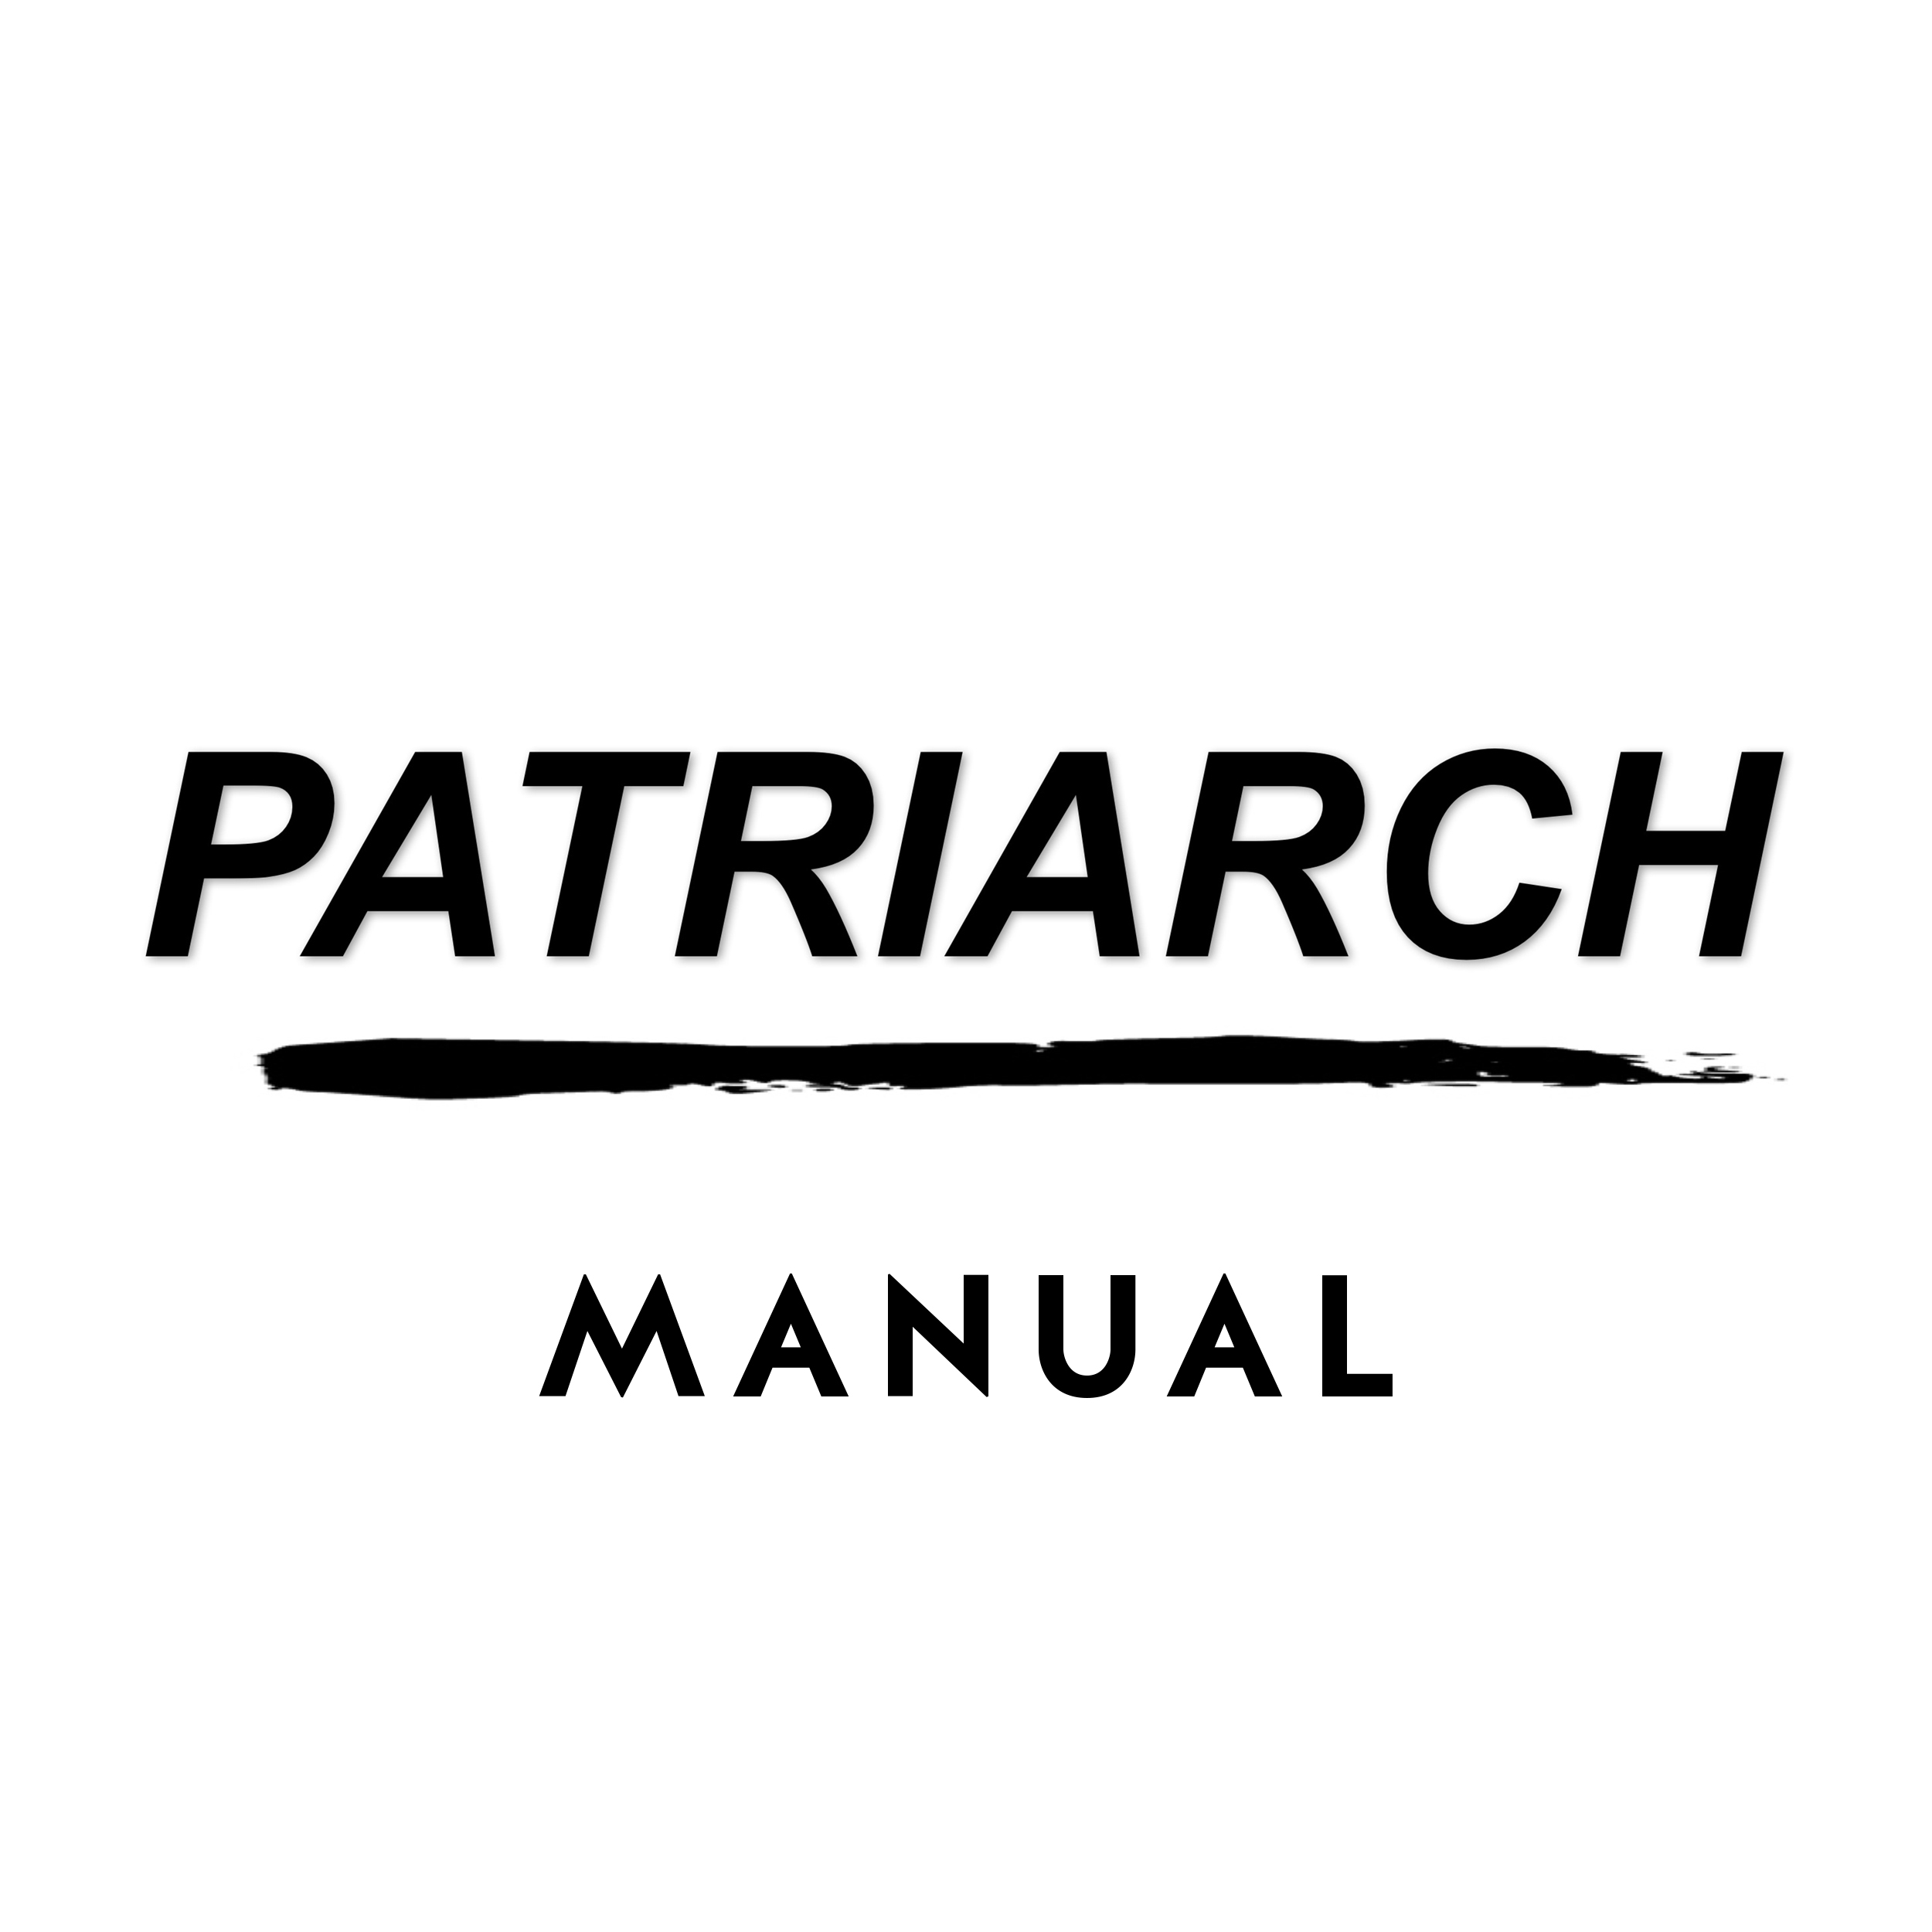 Assessment Of Honour Based Violence Patriarch Manual